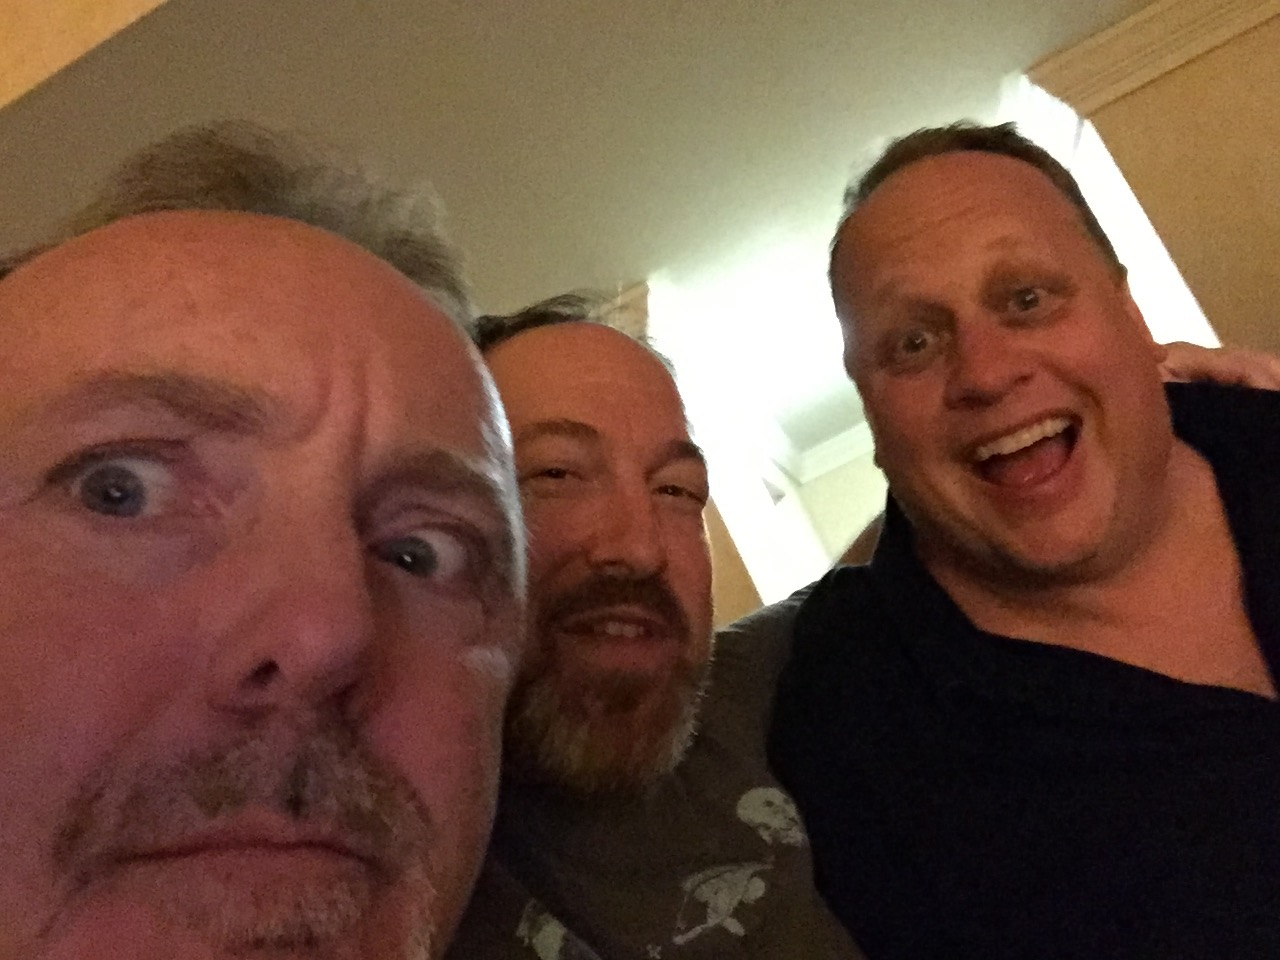 Doug Blush, myself and Steve Julin